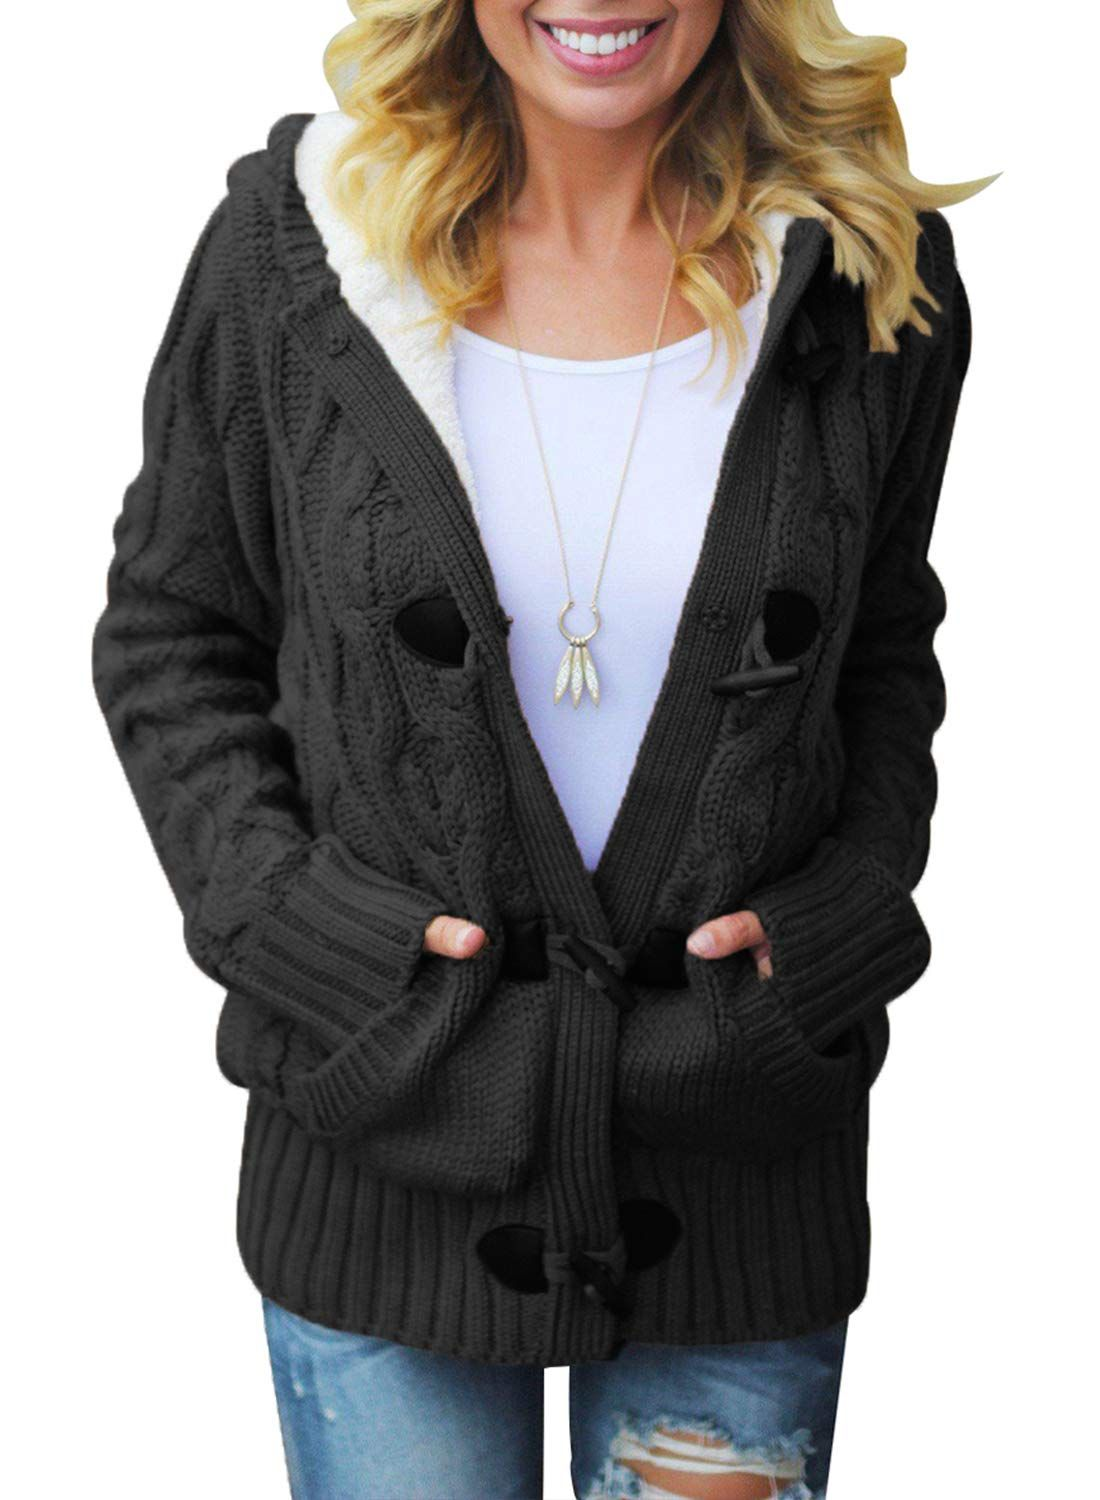 b11cdf8309c Dokotoo Womens Plus Size Regular Ladies Winter Hooded Casual Cardigans  Solid Open Front Long Sleeve Cable Knit Sweater Fleece Coat Outwear Black  XXLarge ...